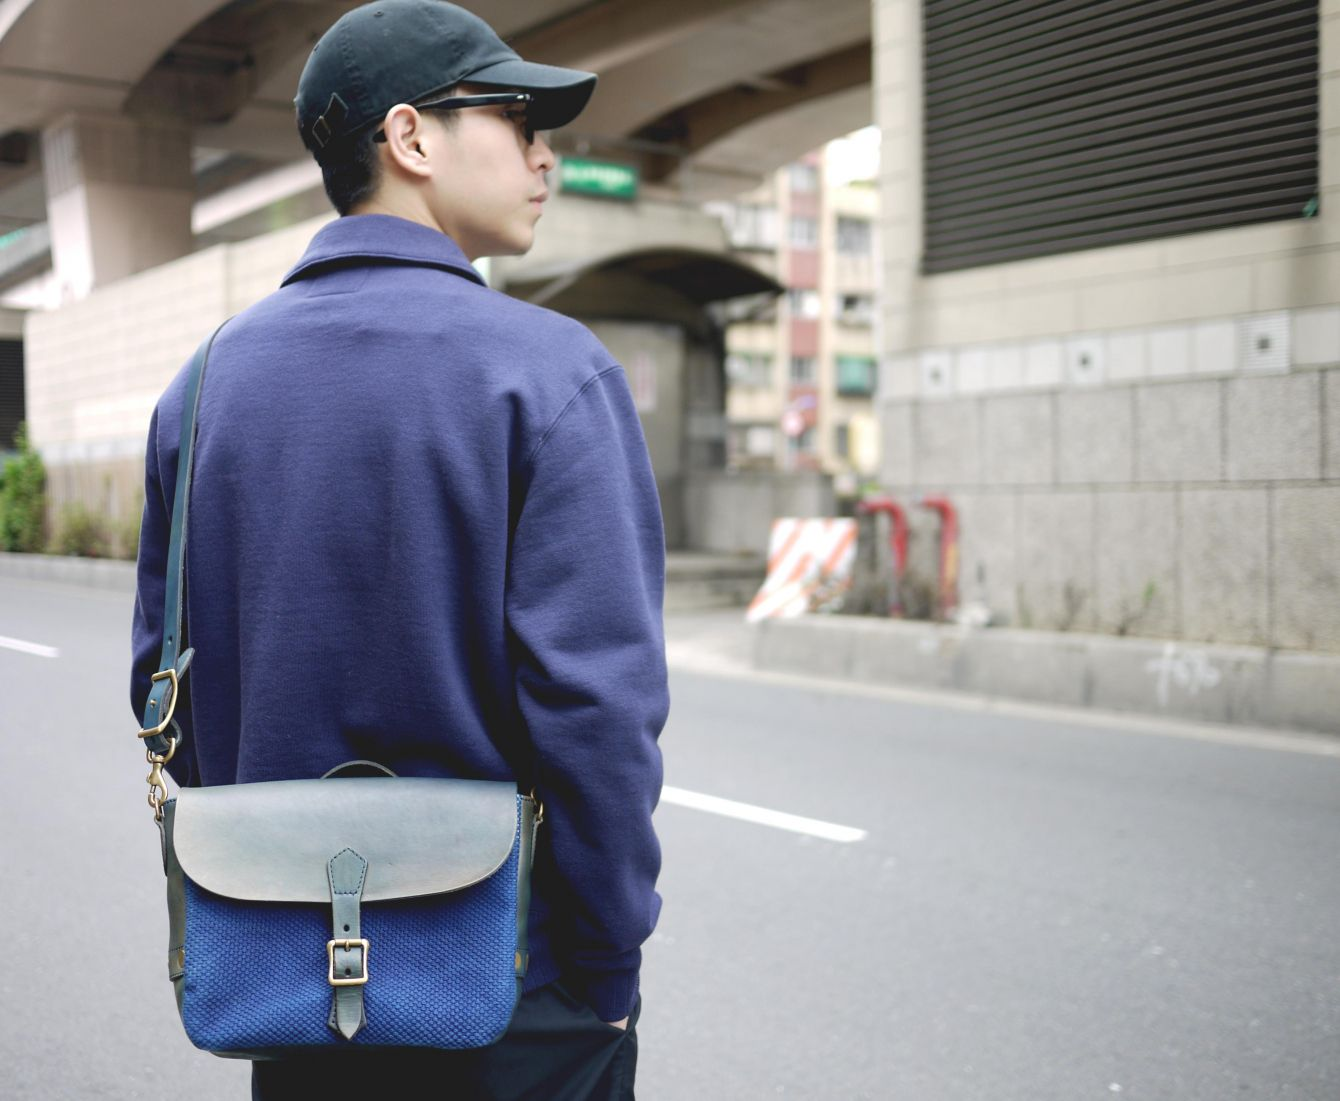 # 日本製雙重傳統藍染郵差包:Vasco - Leather Postman Mini Shoulder Bag / Sashiko 9